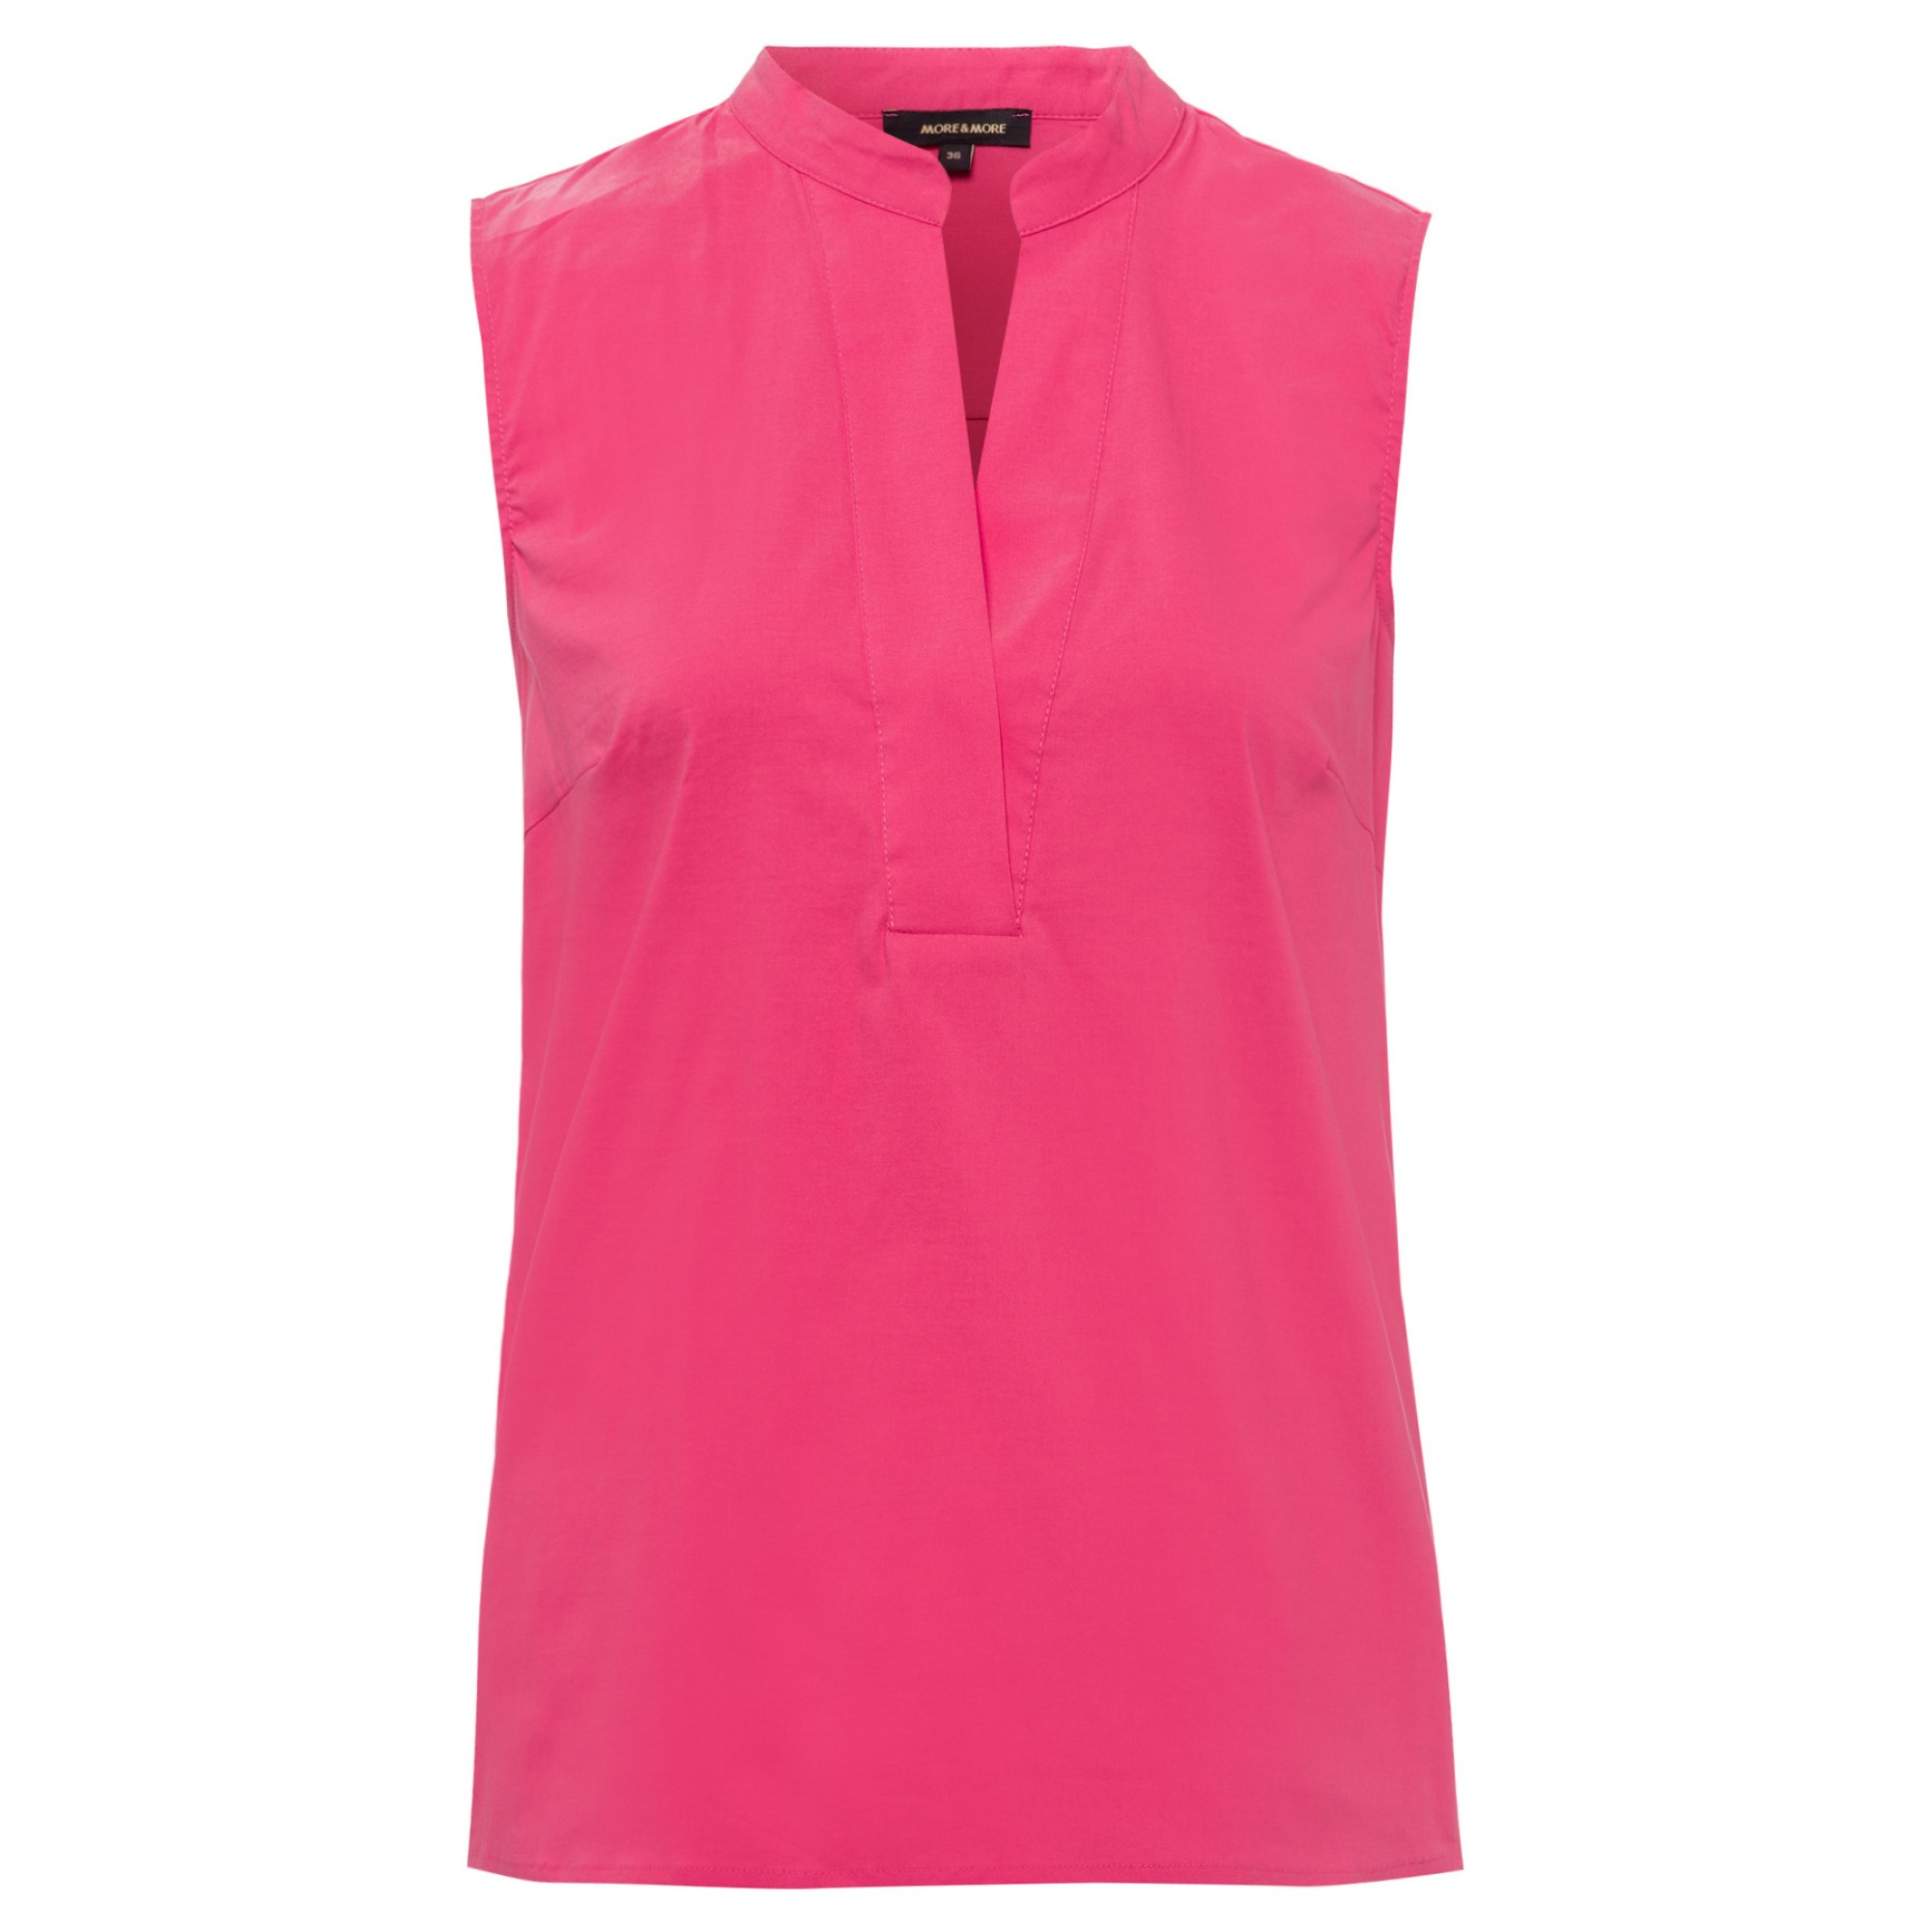 Bluse, Baumwoll/Stretch, pink berry 11832590-0831 1